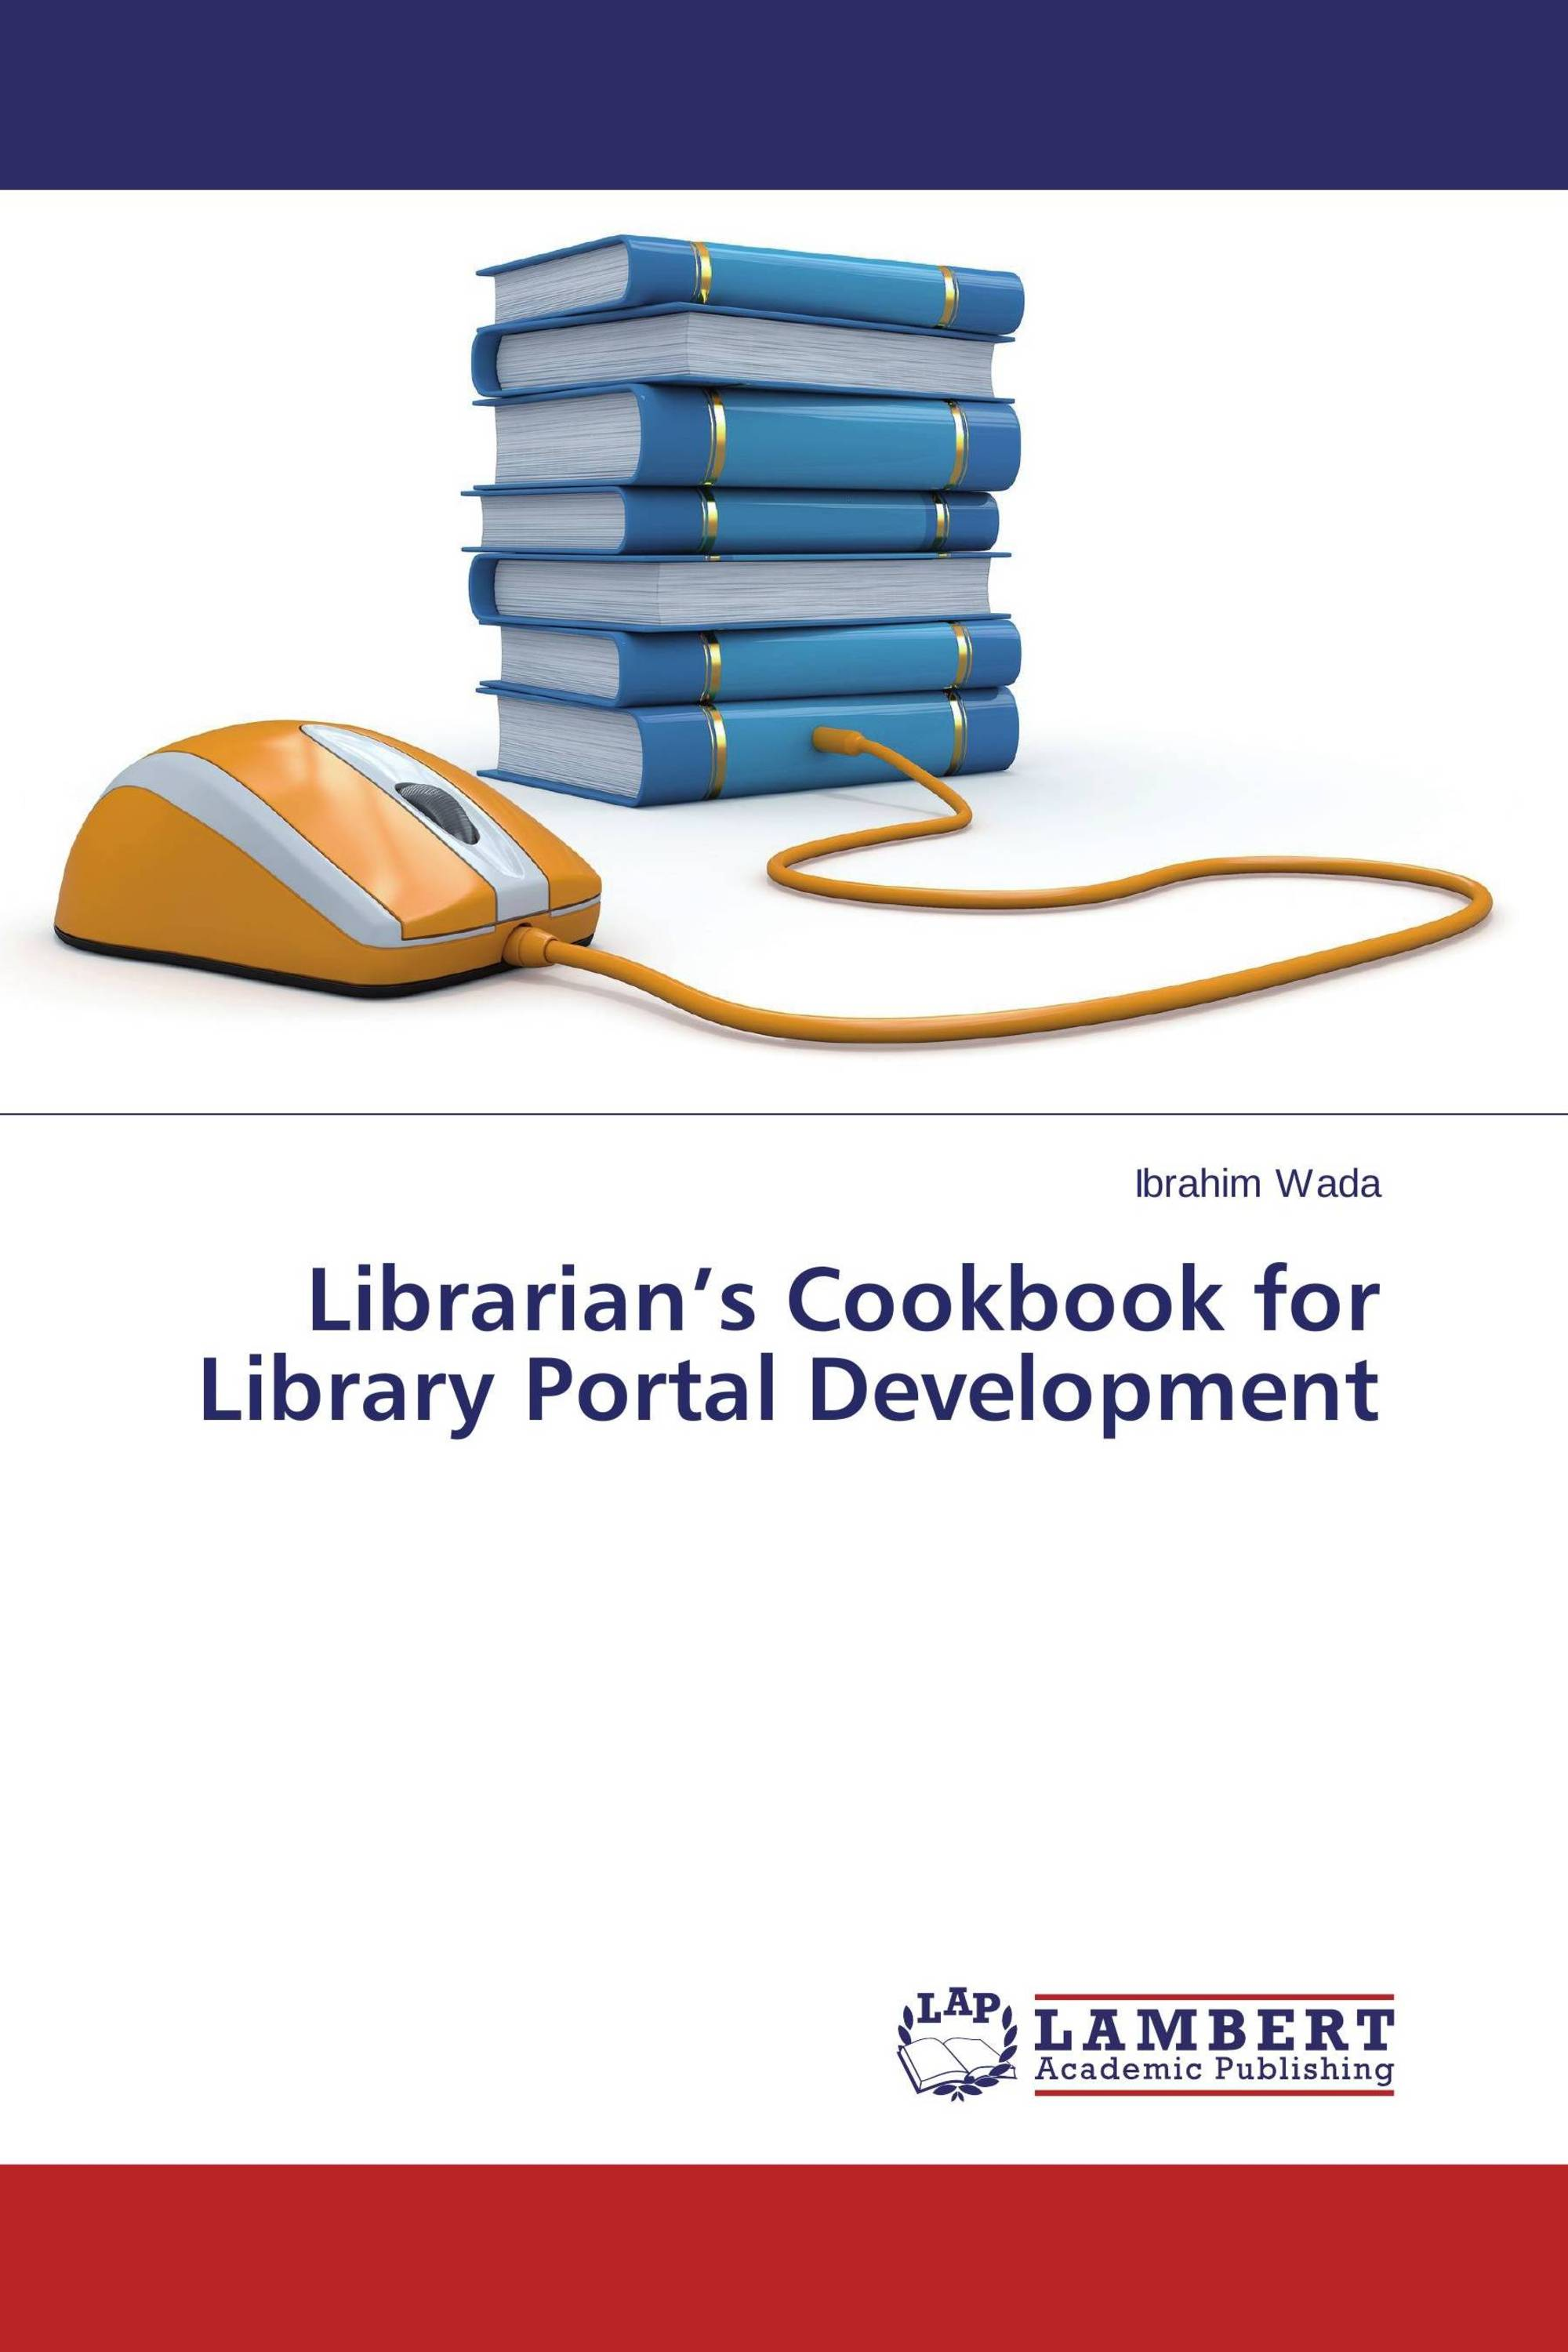 the use of electronics and internet by librarians